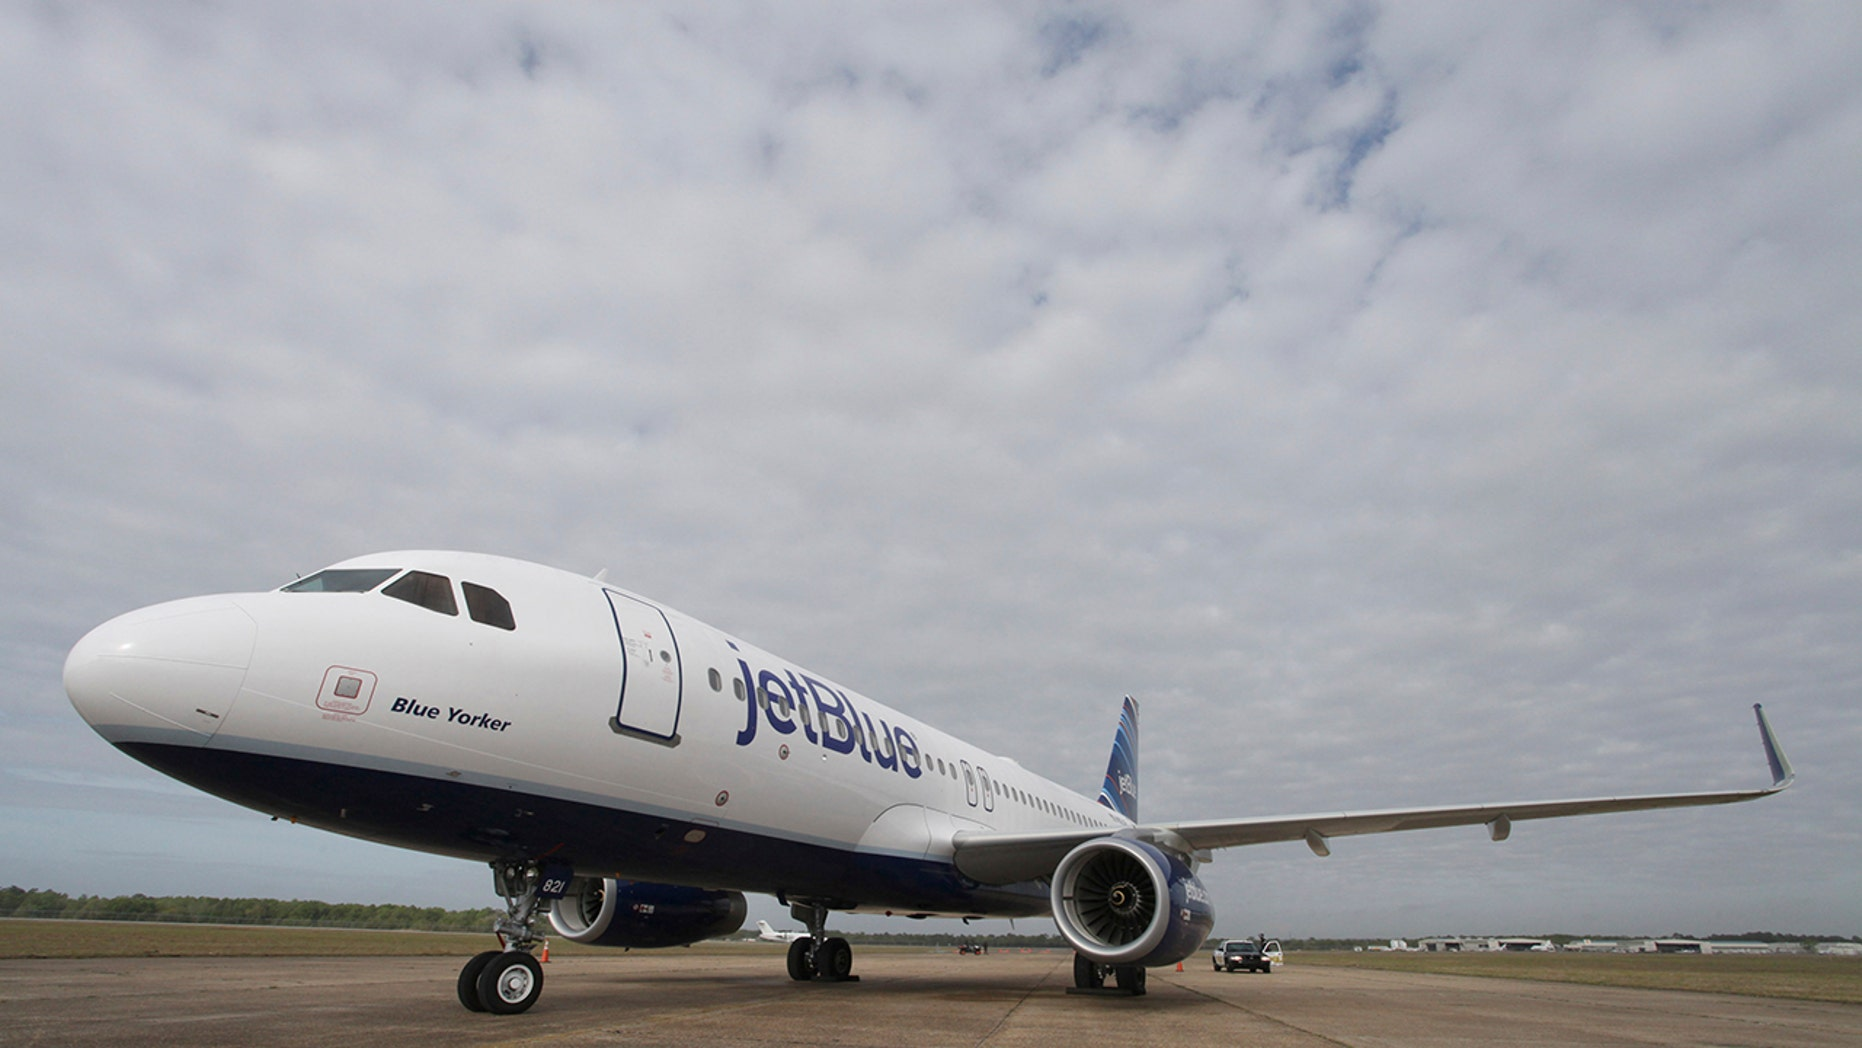 A JetBlue Airbus A320 is pictured on the tarmac in Mobile, Ala., April 8, 2013.